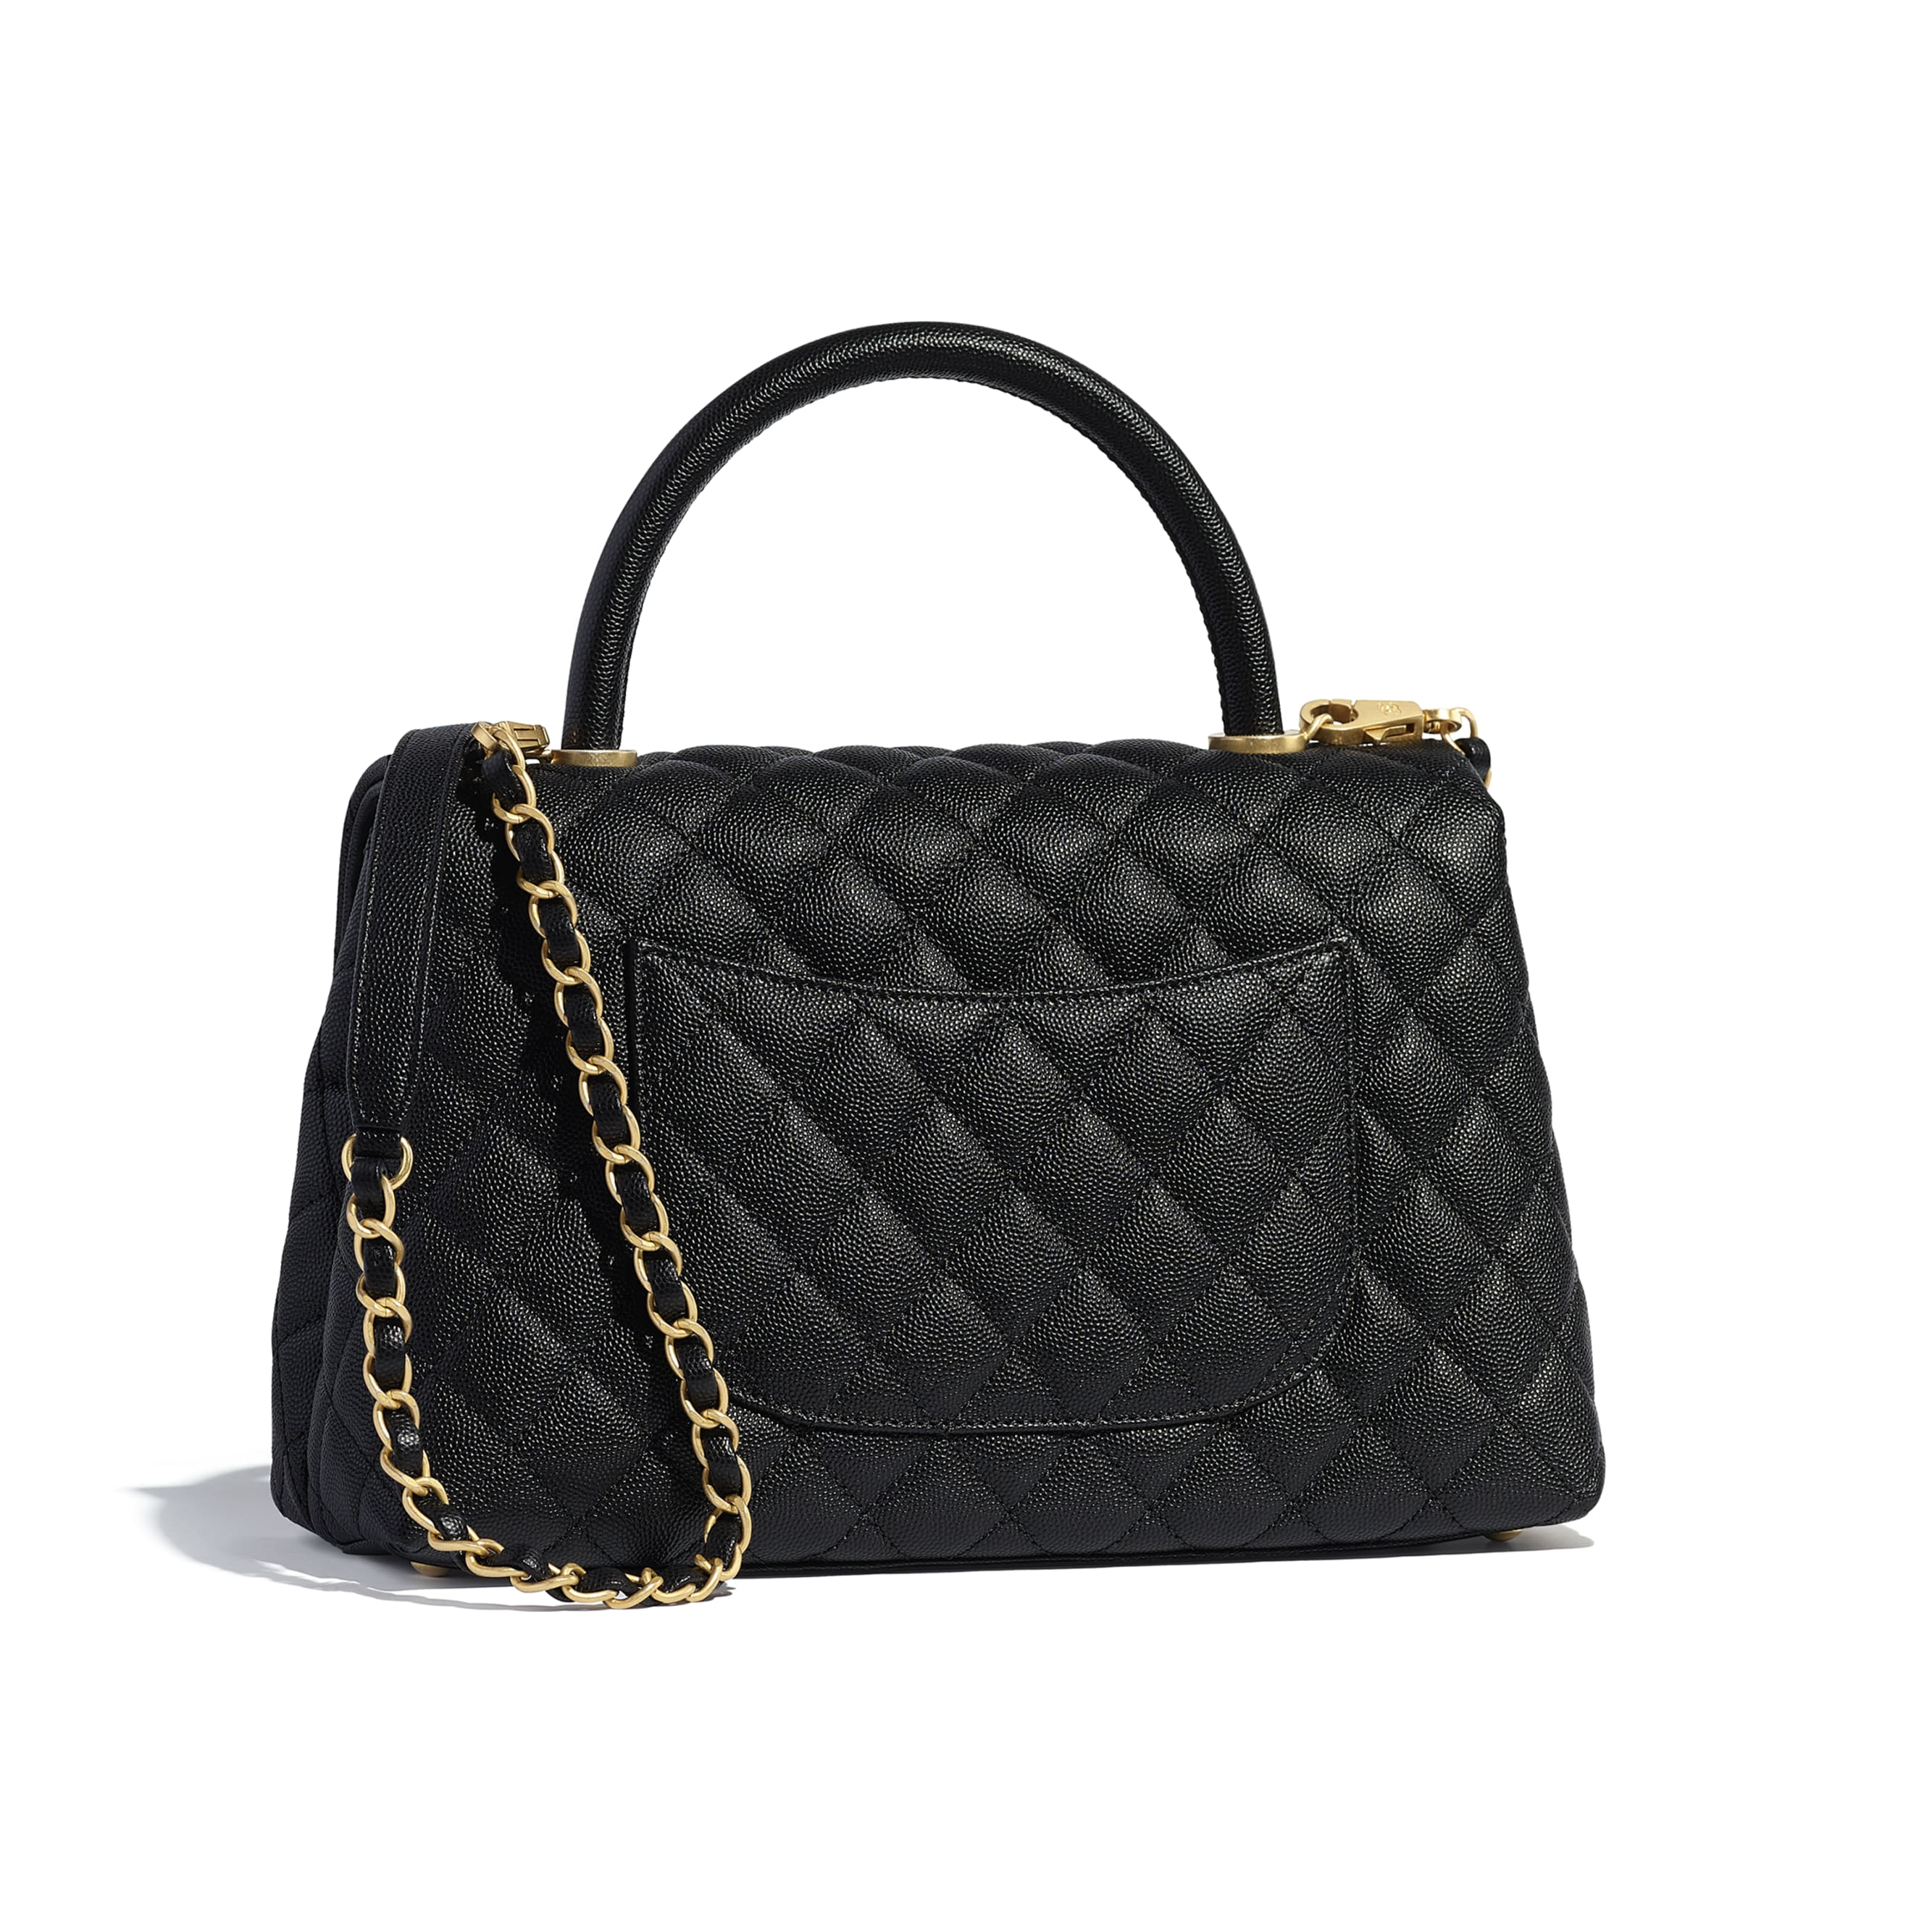 Flap Bag With Top Handle - Black - Grained Calfskin & Gold-Tone Metal - CHANEL - Alternative view - see standard sized version